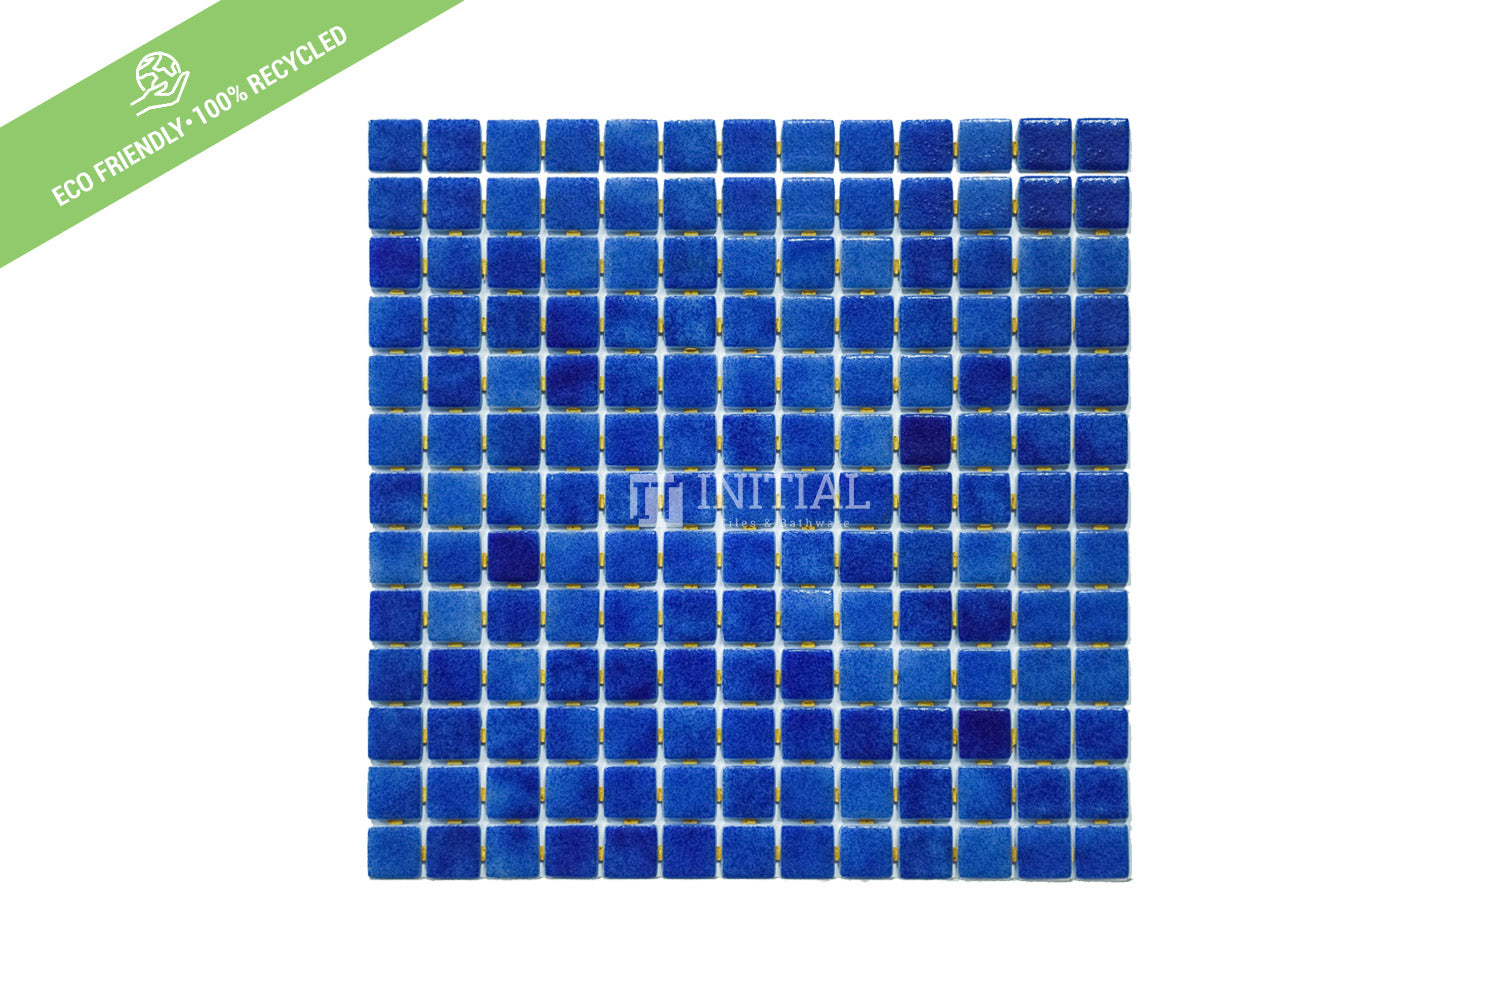 Swimming Pool Mosaic Euro Mosaic Anti-slip Dark Blue